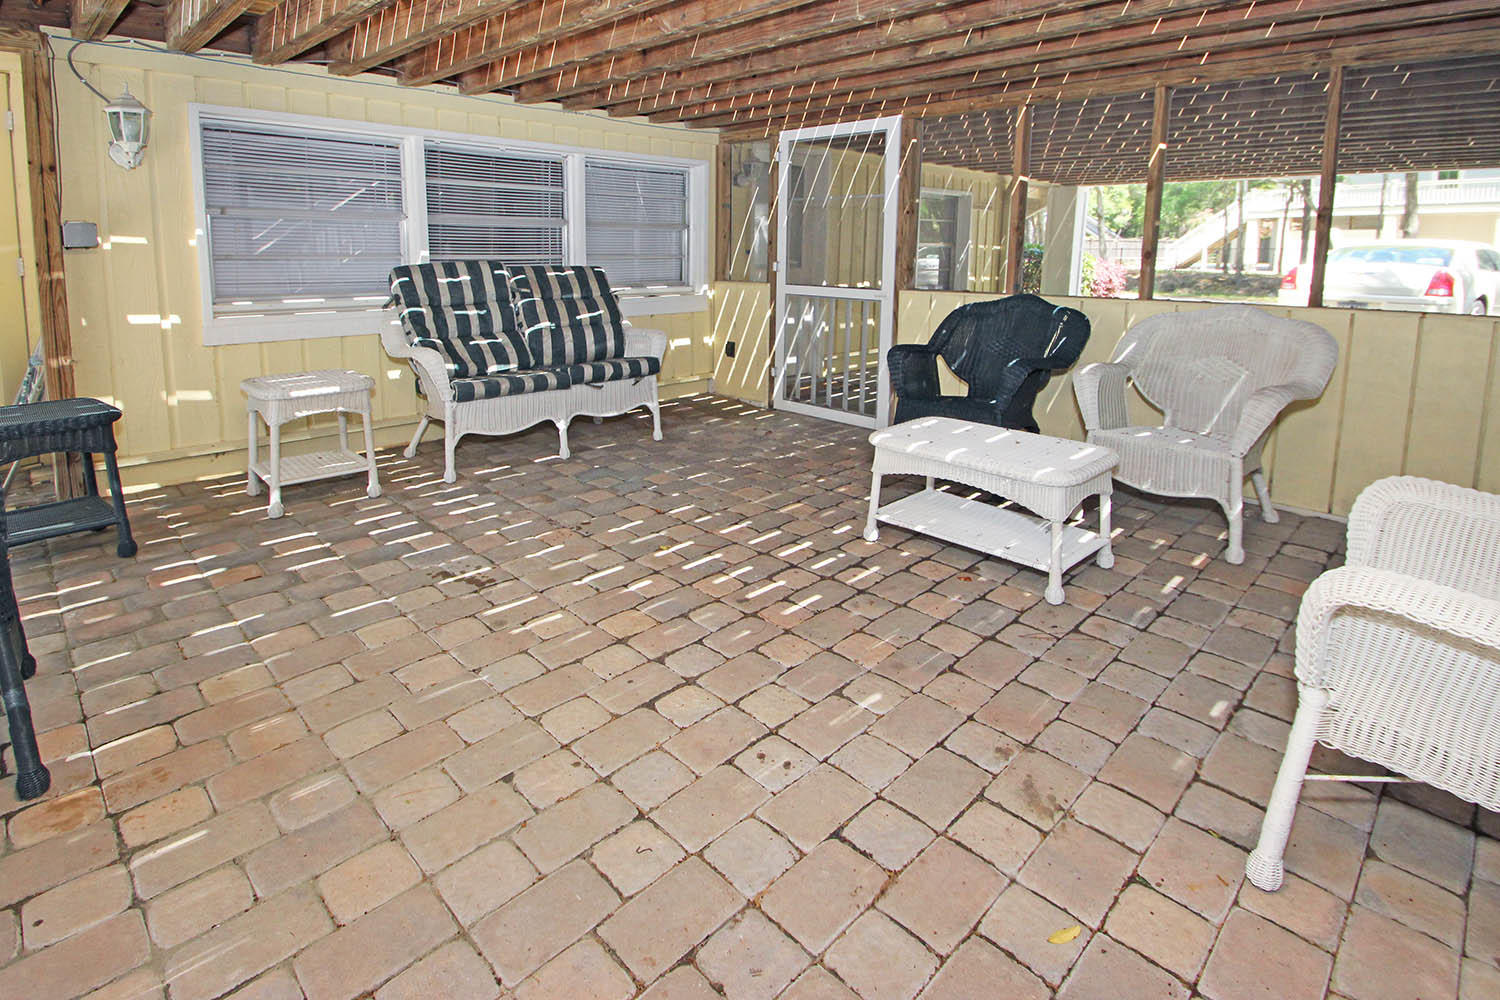 Screened porch by pool area